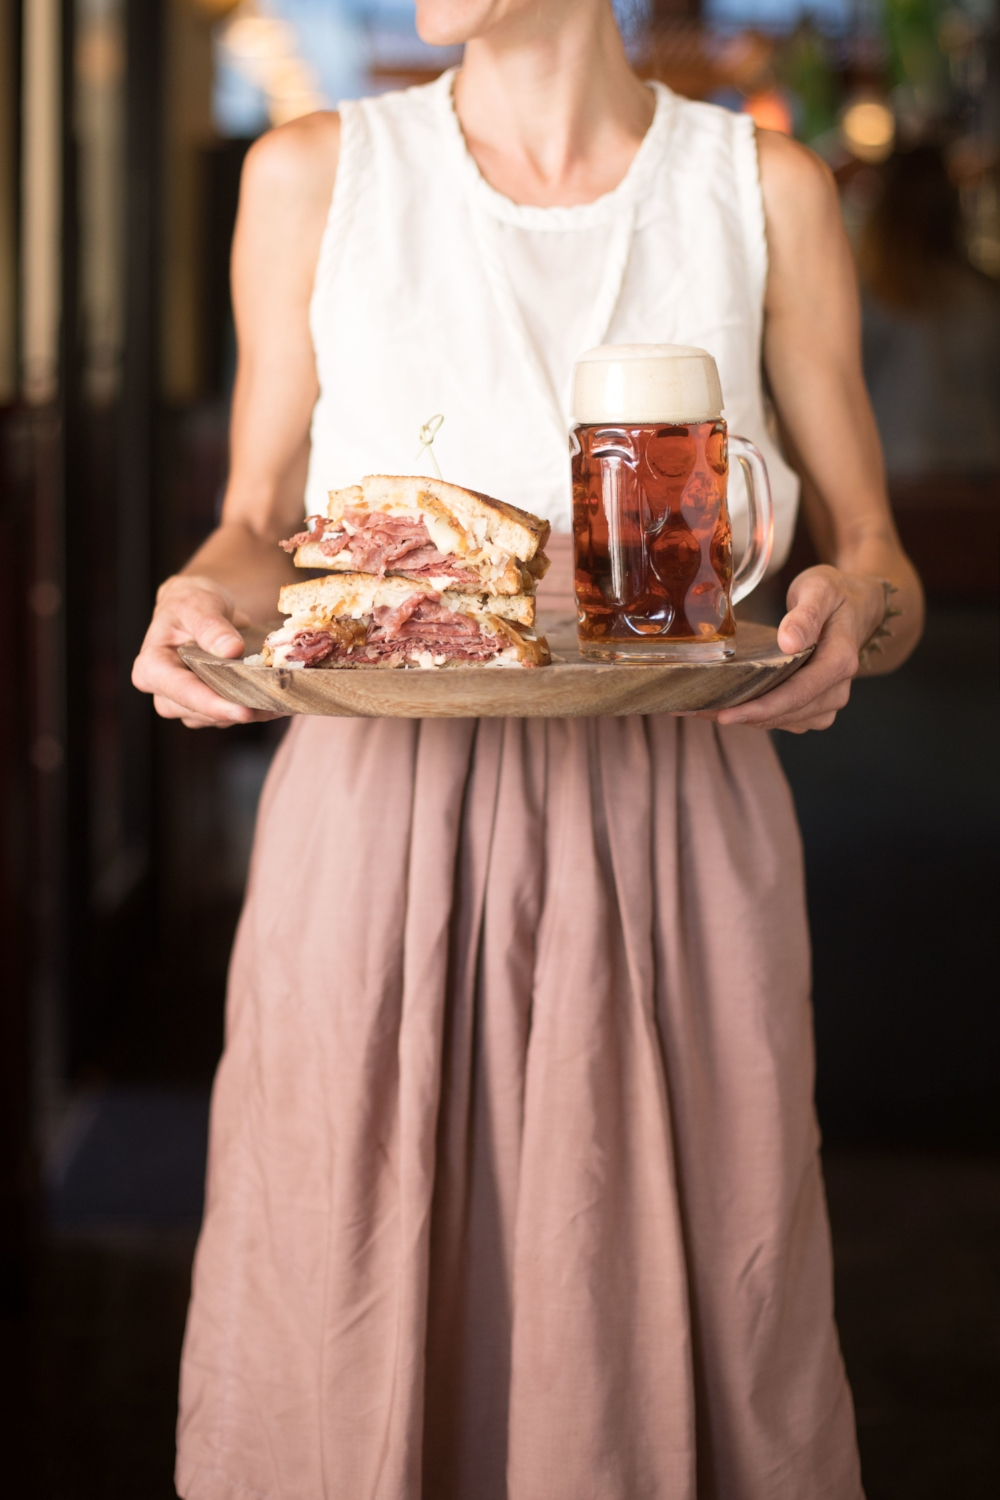 Jimena-Peck-Denver-Food-Photographer-Gordon-Biersch-Brewery-Sandwich-Beer-Chop